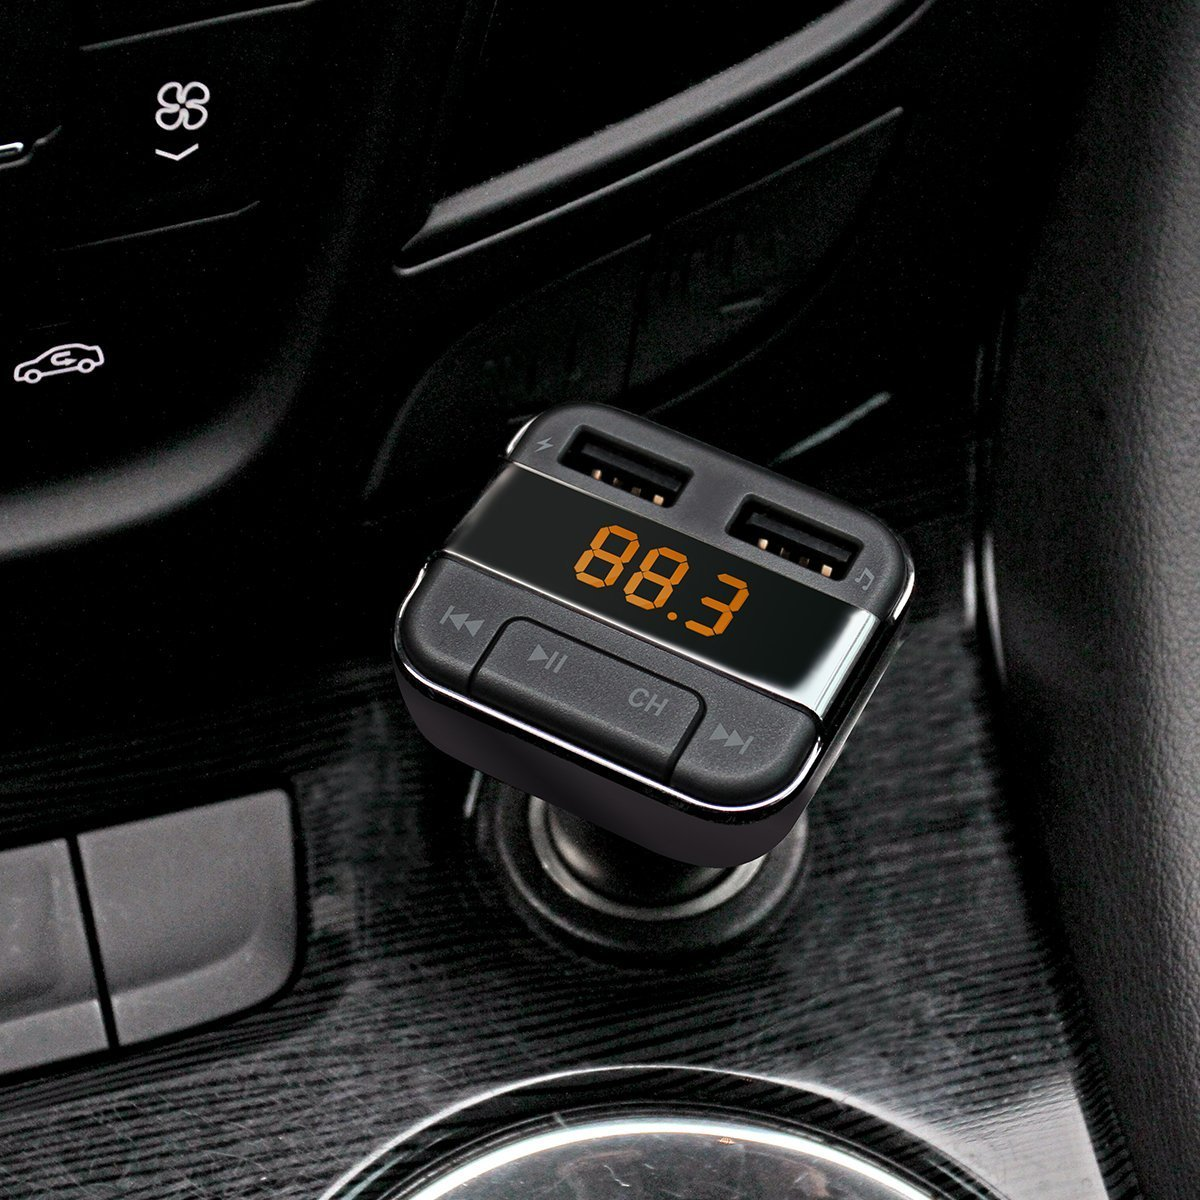 Perbeat Car Bluetooth FM transmitter for iPhone/Android with MP3 Music controls. Dual USB Charging ports. Supports USB/Micro SD card. Hands Free Remote control BT10 Black by Perbeat (Image #7)